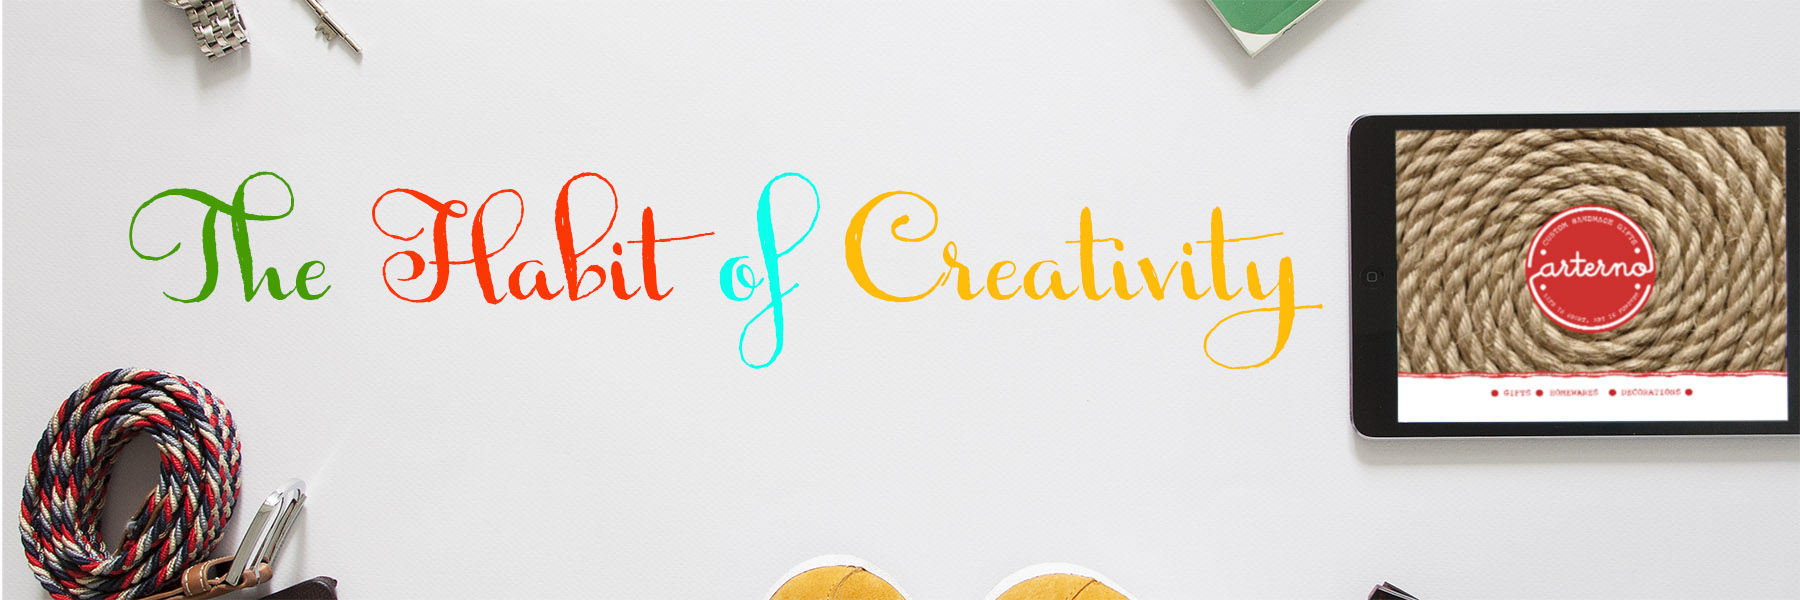 The Habit of Creativity Banner